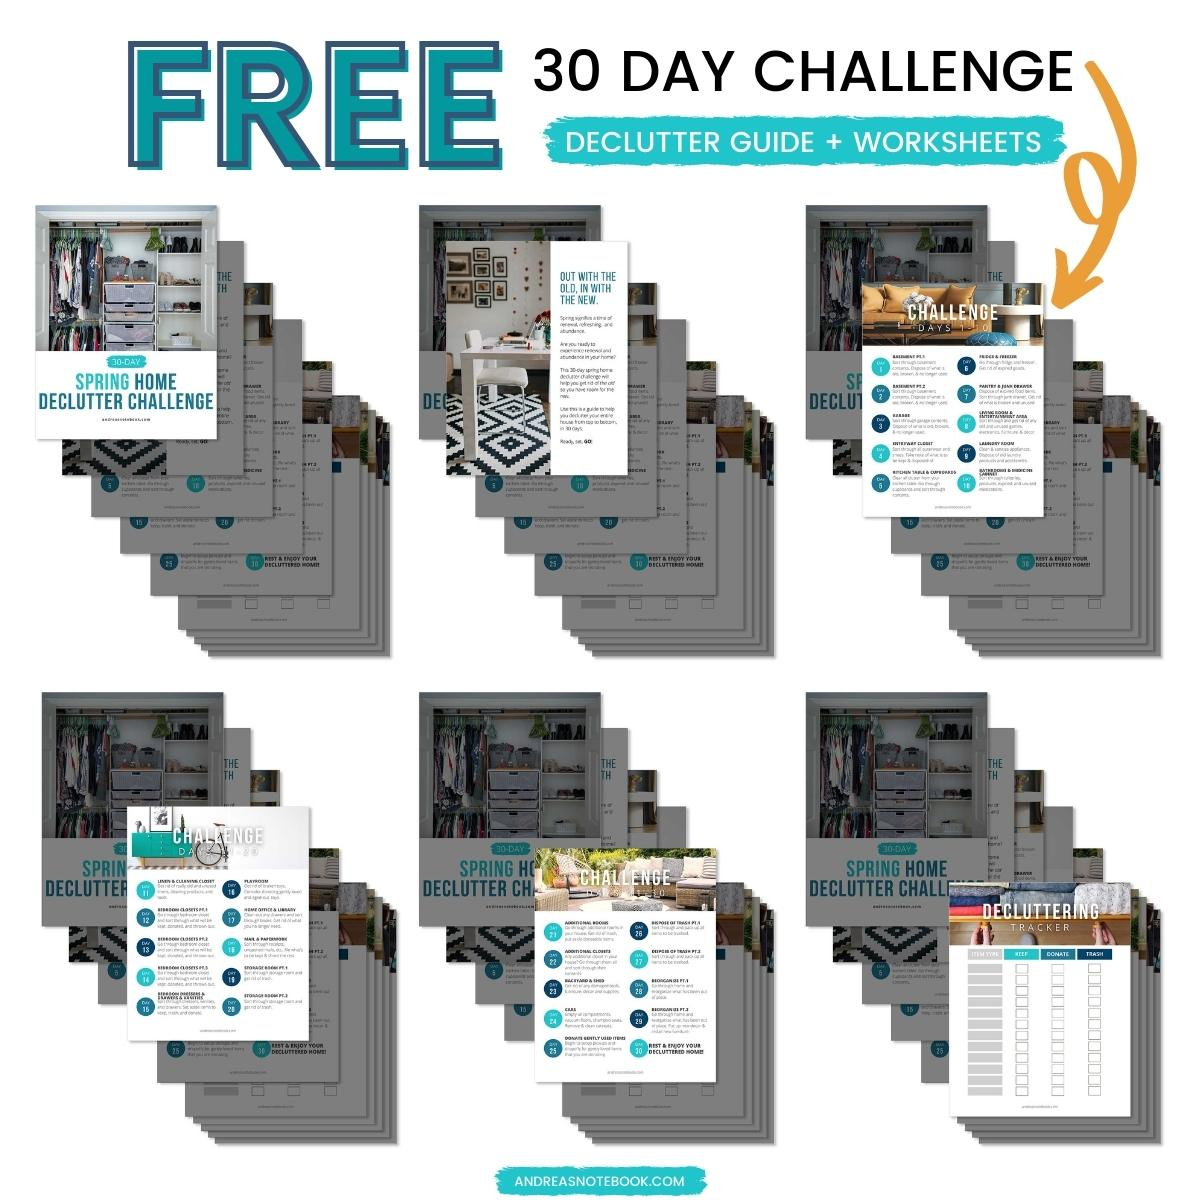 free 30 day challenge declutter guide and worksheet cleaning checklist - how to declutter your home, spring cleaning your messy house - stack of free PDF printables to help you declutter your home